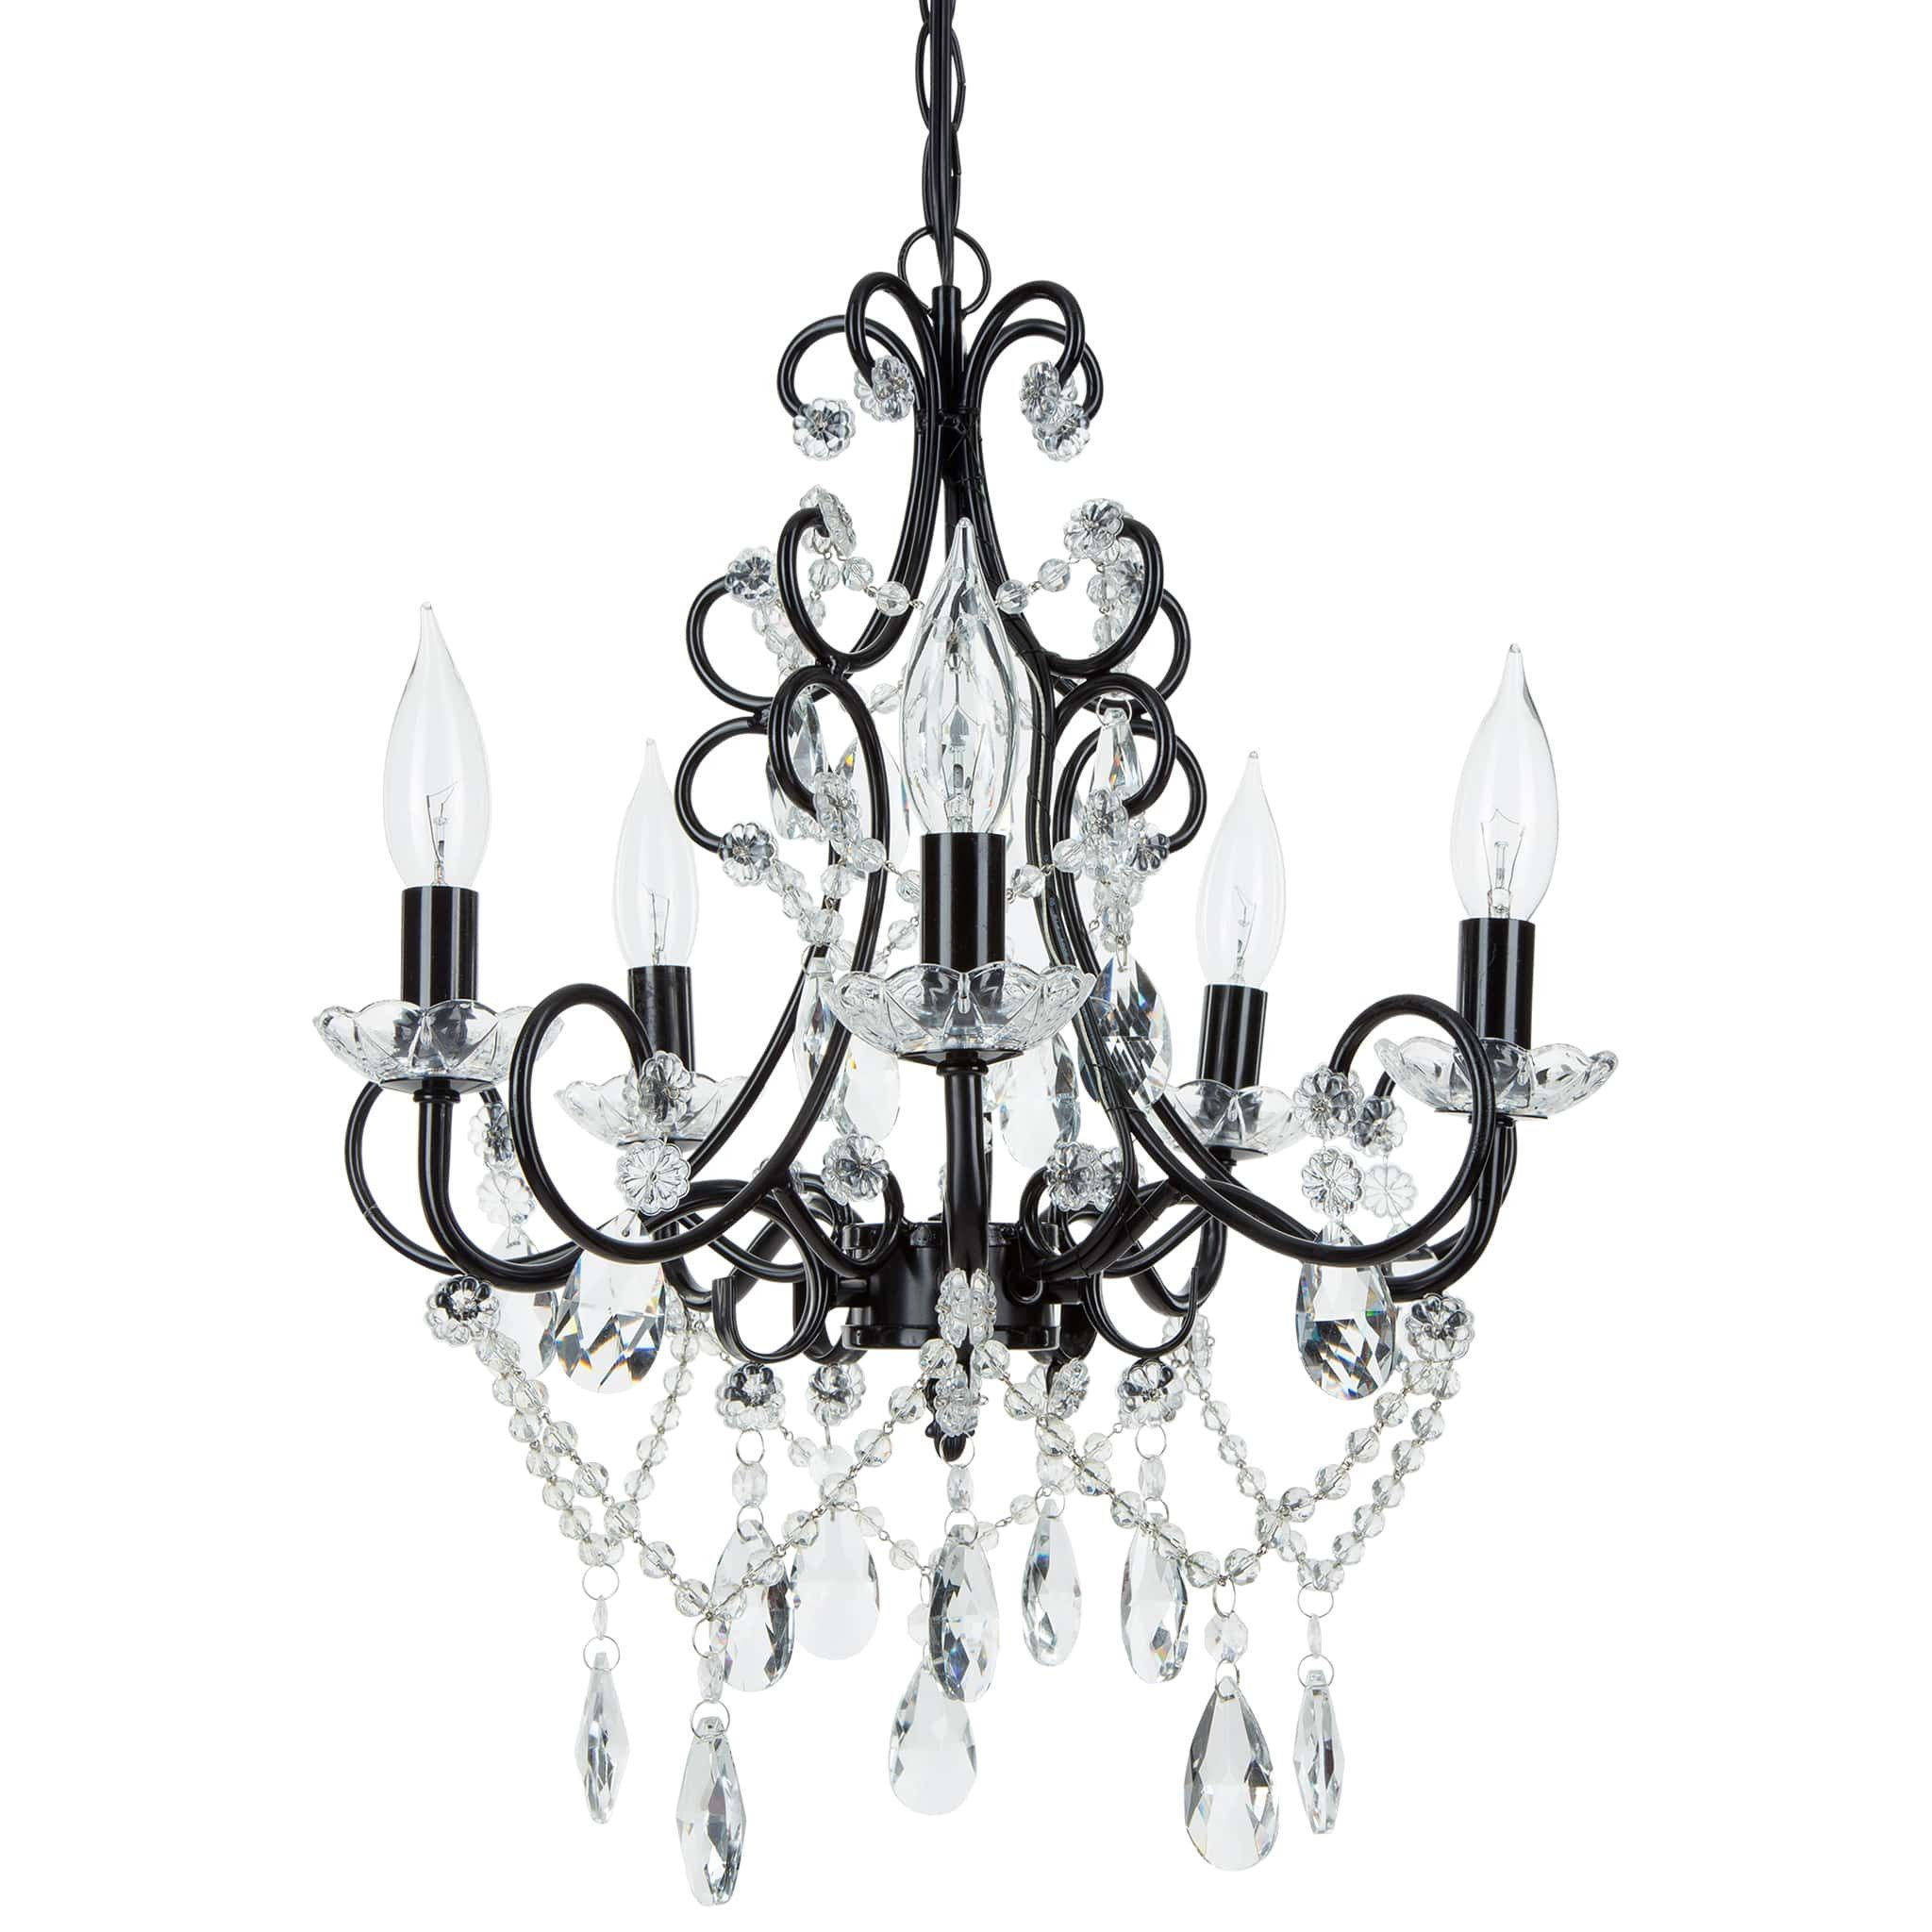 5 light classic crystal plug in chandelier black pinterest theresa classic crystal plug in chandelier 5 lights black aloadofball Image collections